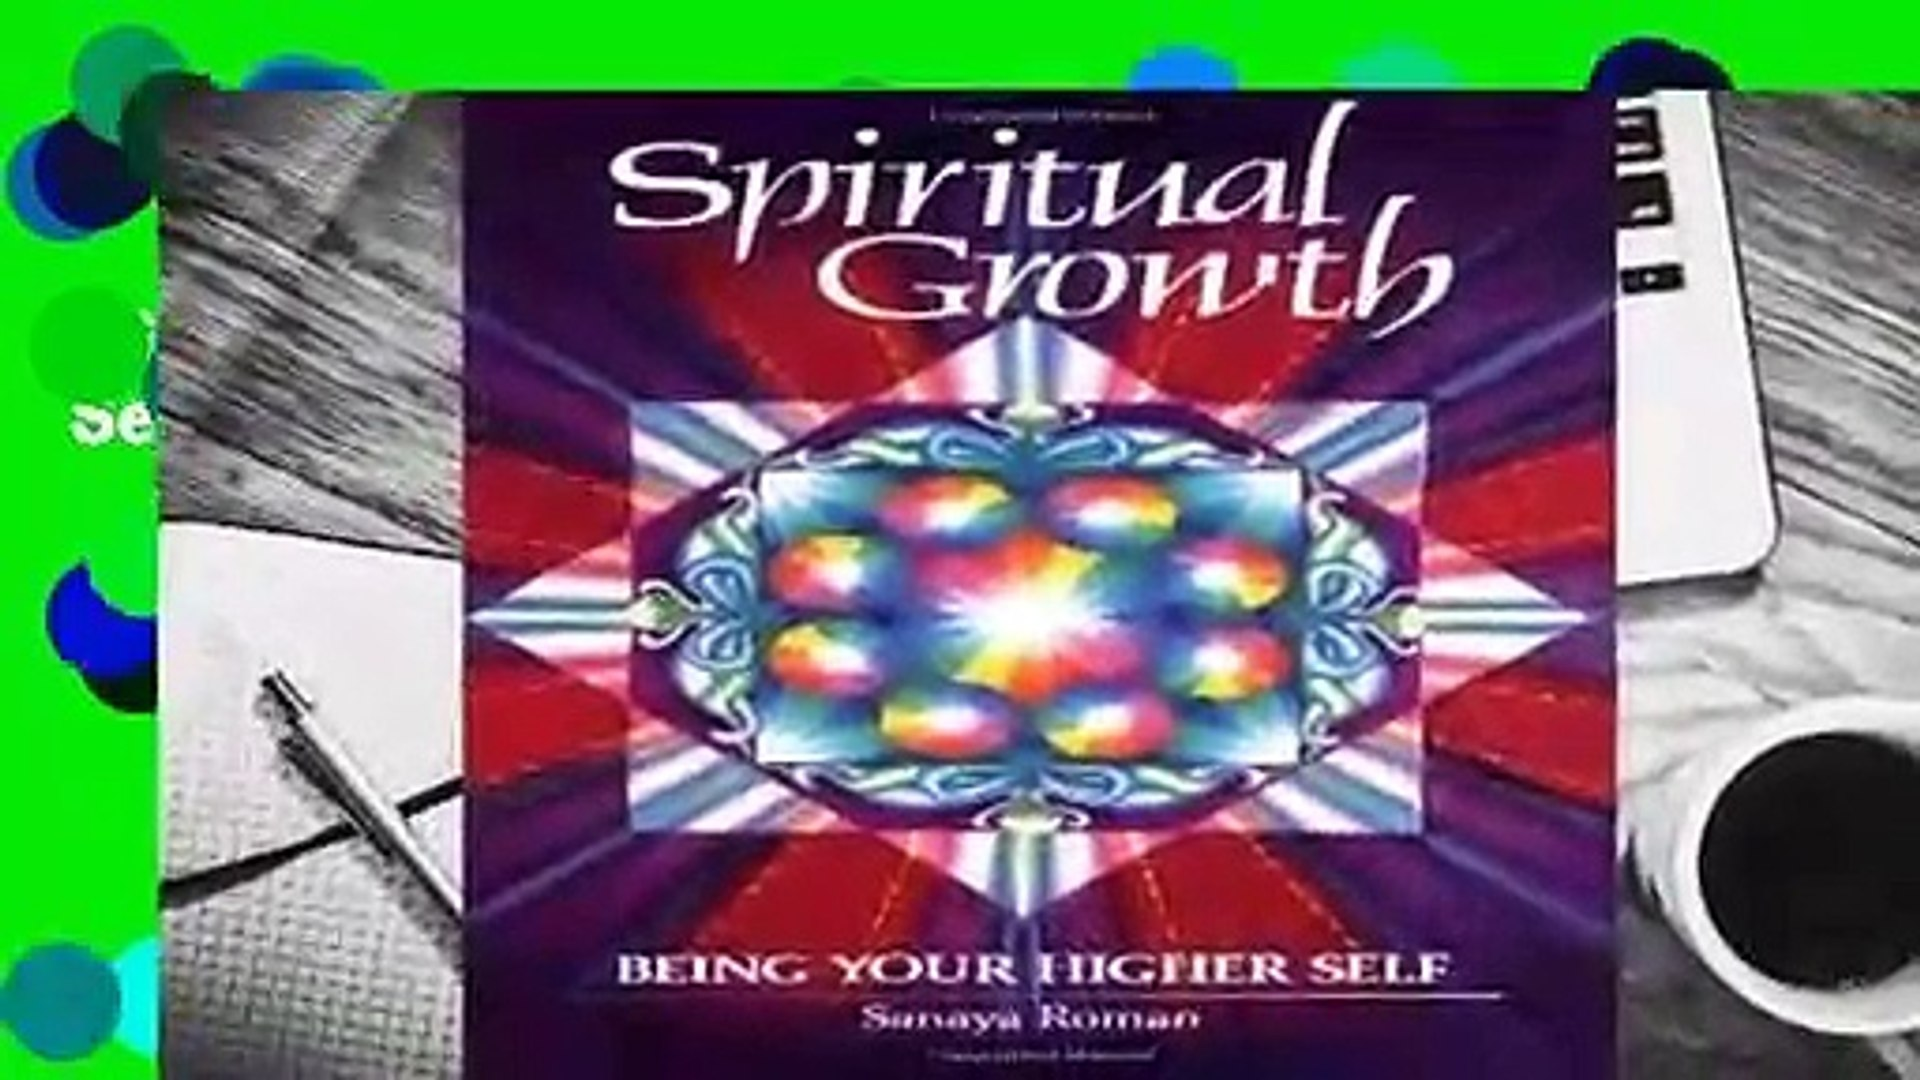 Spiritual Growth: Being Your Higher Self (Earth life)  For Kindle